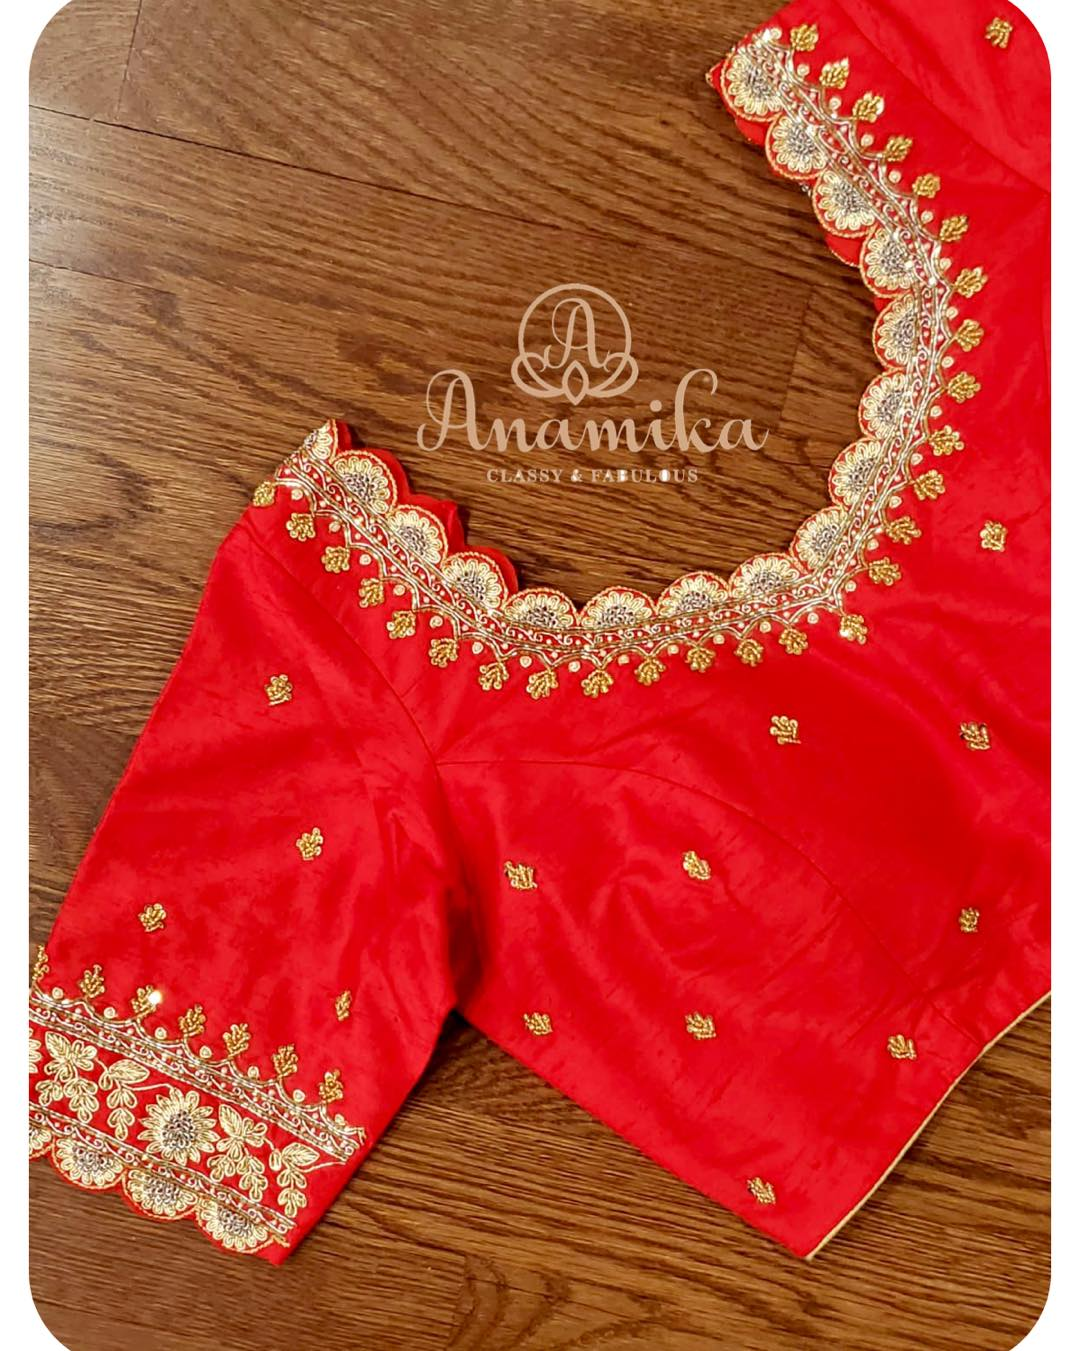 No matter what the current trend is red and white is an eternal combination !! 